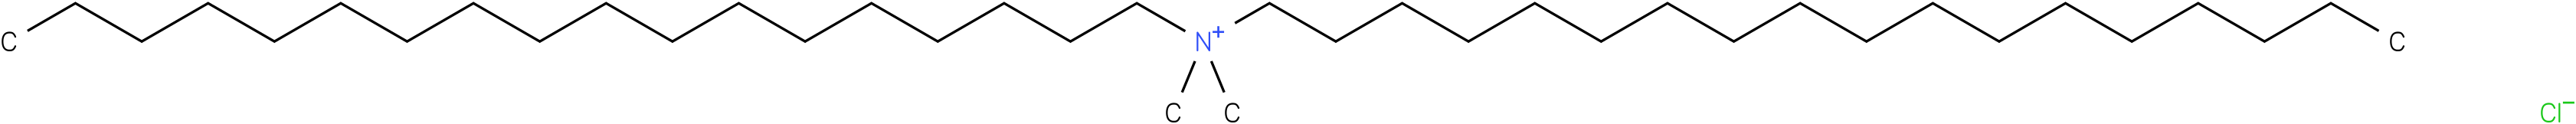 2-Methoxymethylphenylboronic acid